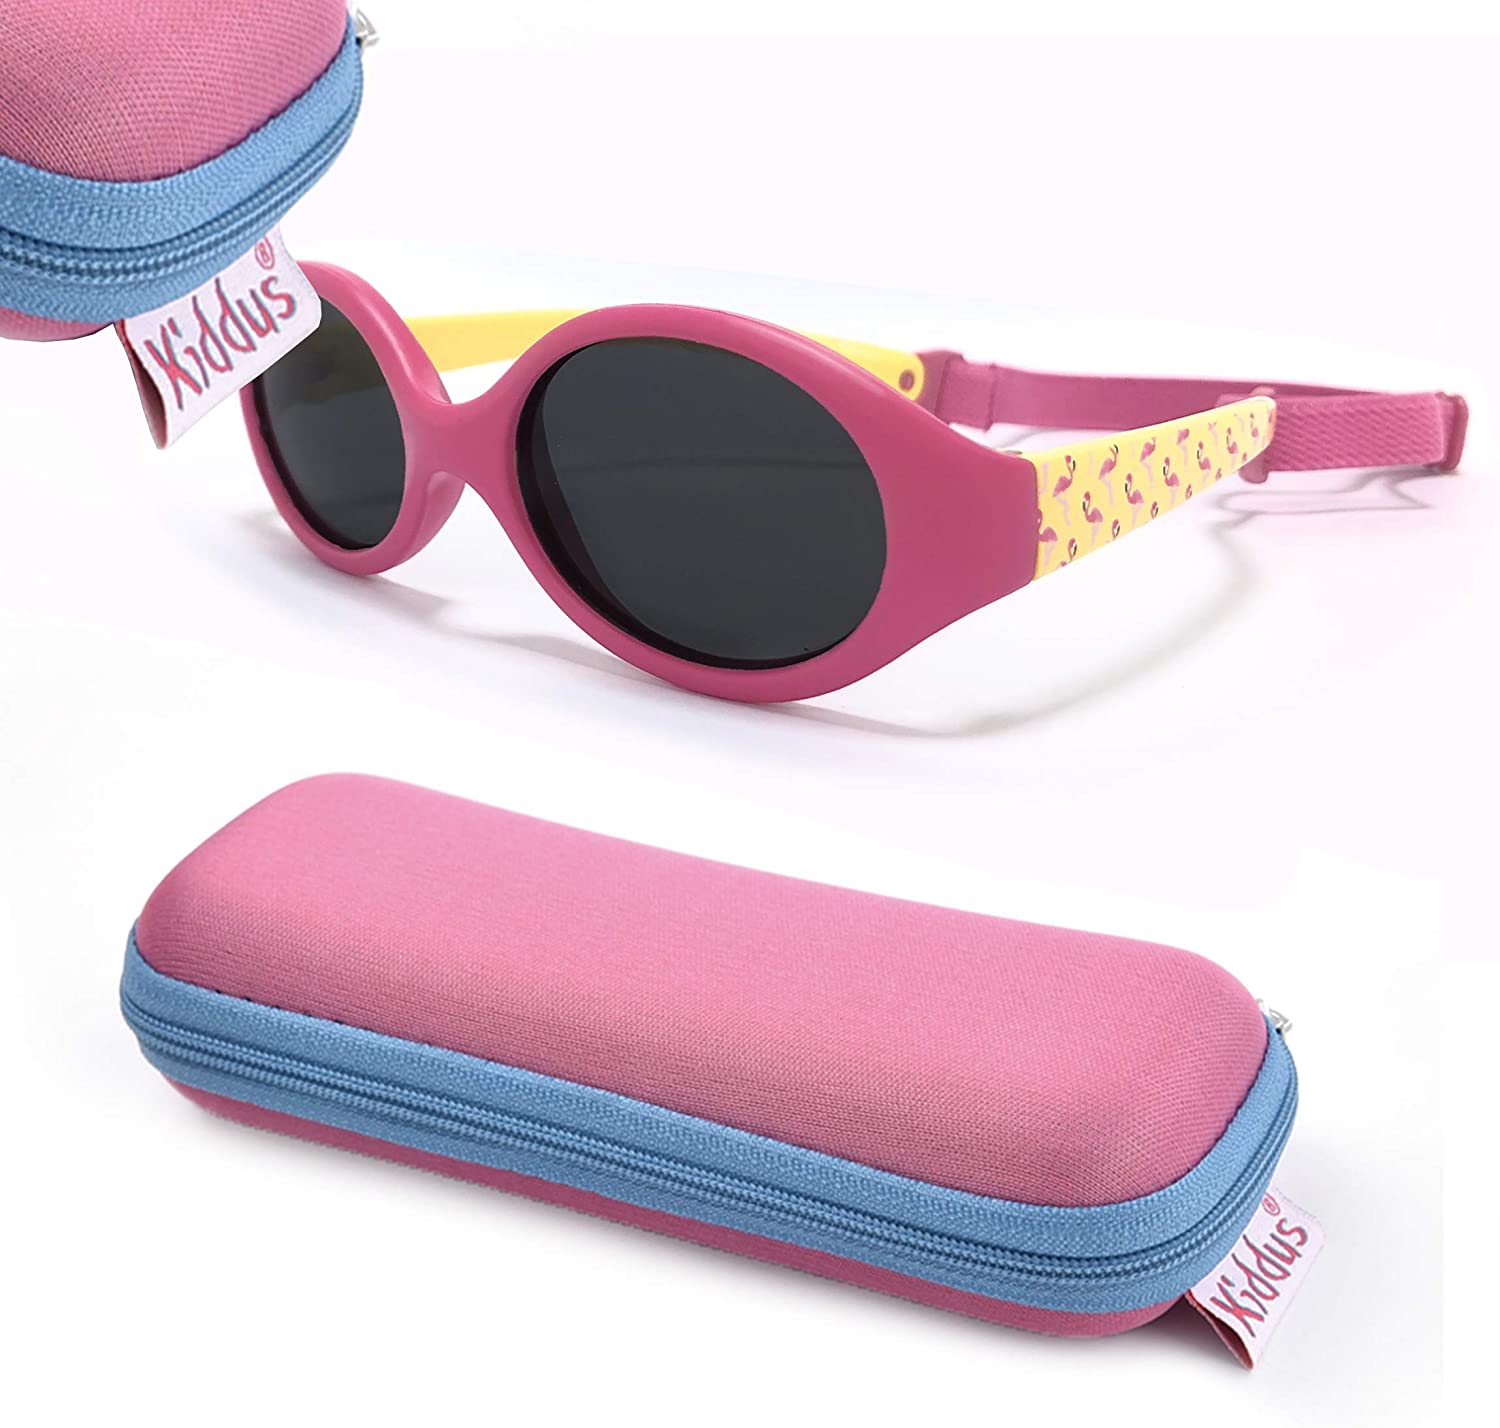 Adjustable and Detachable Elastic Band Sun filter UV400 KIDDUS Baby Comfort SUNGLASSES for Babies Boy and Girl From 6 months Flexible Safe Comfortable and Resistant Goggles